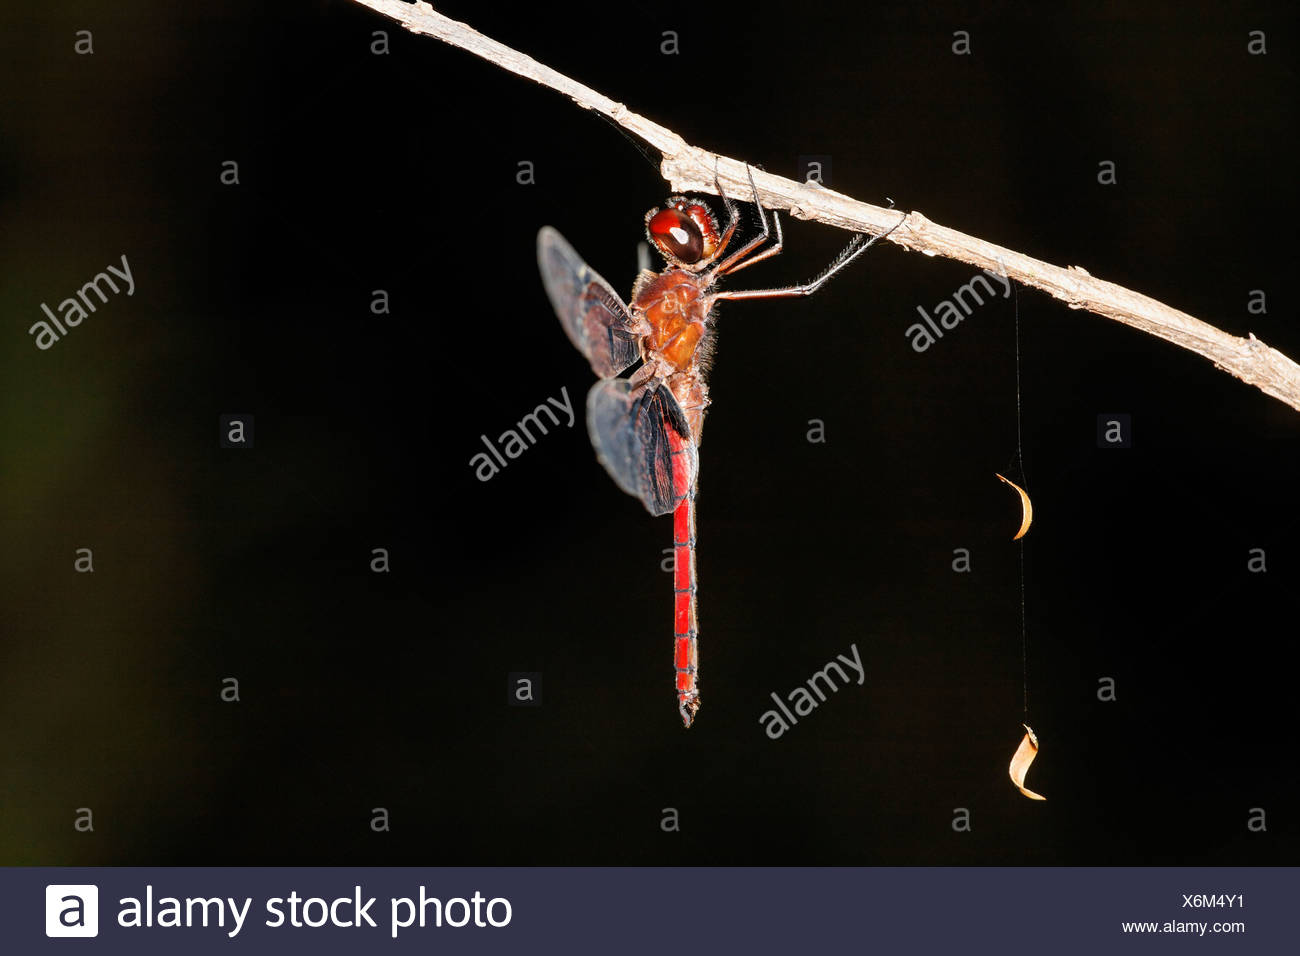 Costa Rica, Dragonfly hanging on twig - Stock Image